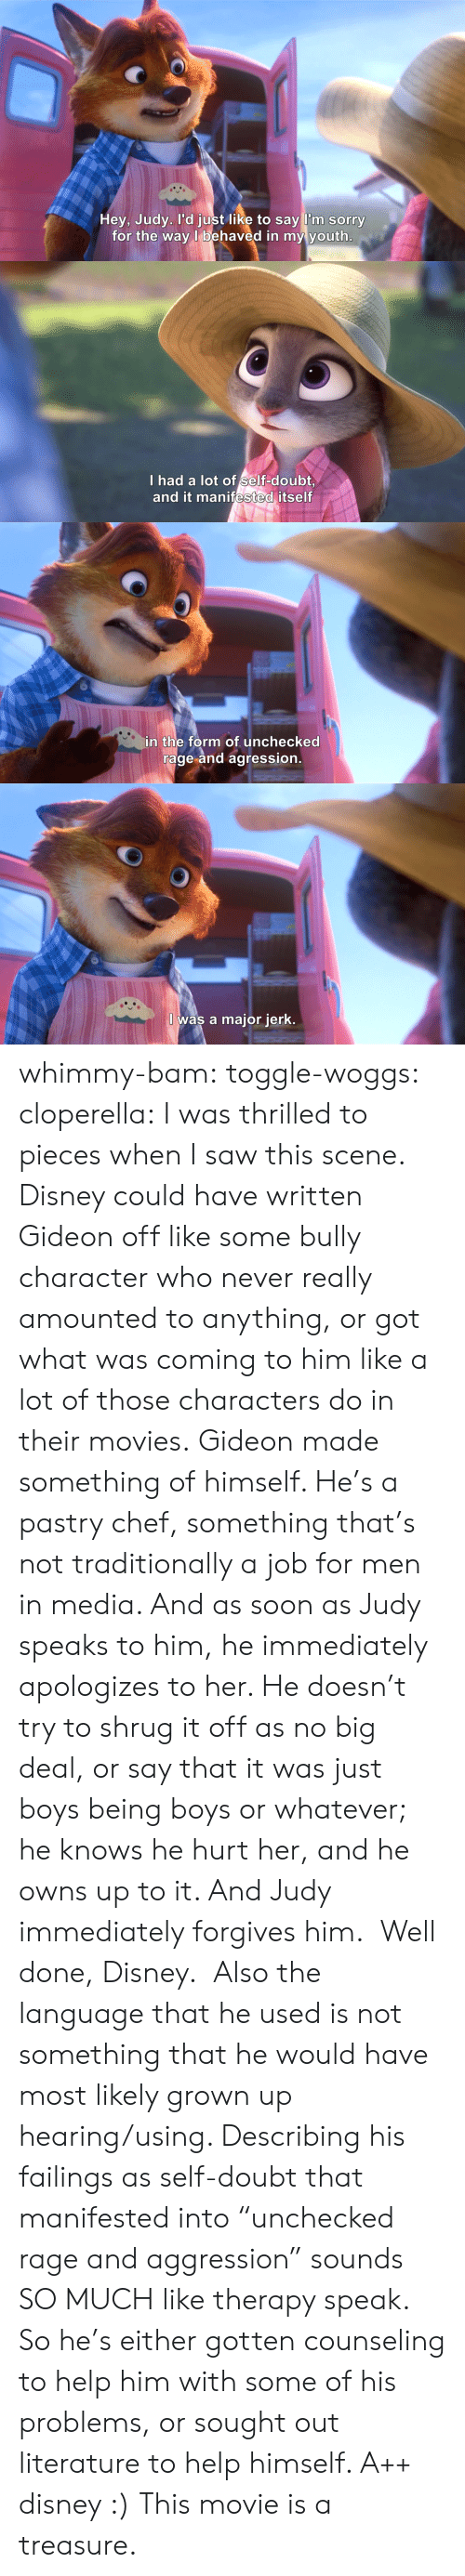 """Movie Is: Hey, Judy. l'd just like to say l'm sorry  for the way l behaved in my youth   I had a lot of self-doubt  and it manifested itself   in the form of unchecked  rage and agression   I was a major jerk. whimmy-bam: toggle-woggs:  cloperella:  I was thrilled to pieces when I saw this scene. Disney could have written Gideon off like some bully character who never really amounted to anything, or got what was coming to him like a lot of those characters do in their movies.Gideon made something of himself. He's a pastry chef, something that's not traditionally a job for men in media. And as soon as Judy speaks to him, he immediately apologizes to her. He doesn't try to shrug it off as no big deal, or say that it was just boys being boys or whatever; he knows he hurt her, and he owns up to it. And Judy immediately forgives him. Well done, Disney.  Also the language that he used is not something that he would have most likely grown up hearing/using. Describing his failings as self-doubt that manifested into""""unchecked rage and aggression"""" sounds SO MUCH like therapy speak. So he's either gotten counseling to help him with some of his problems, or sought out literature to help himself. A++ disney :)  This movie is a treasure."""